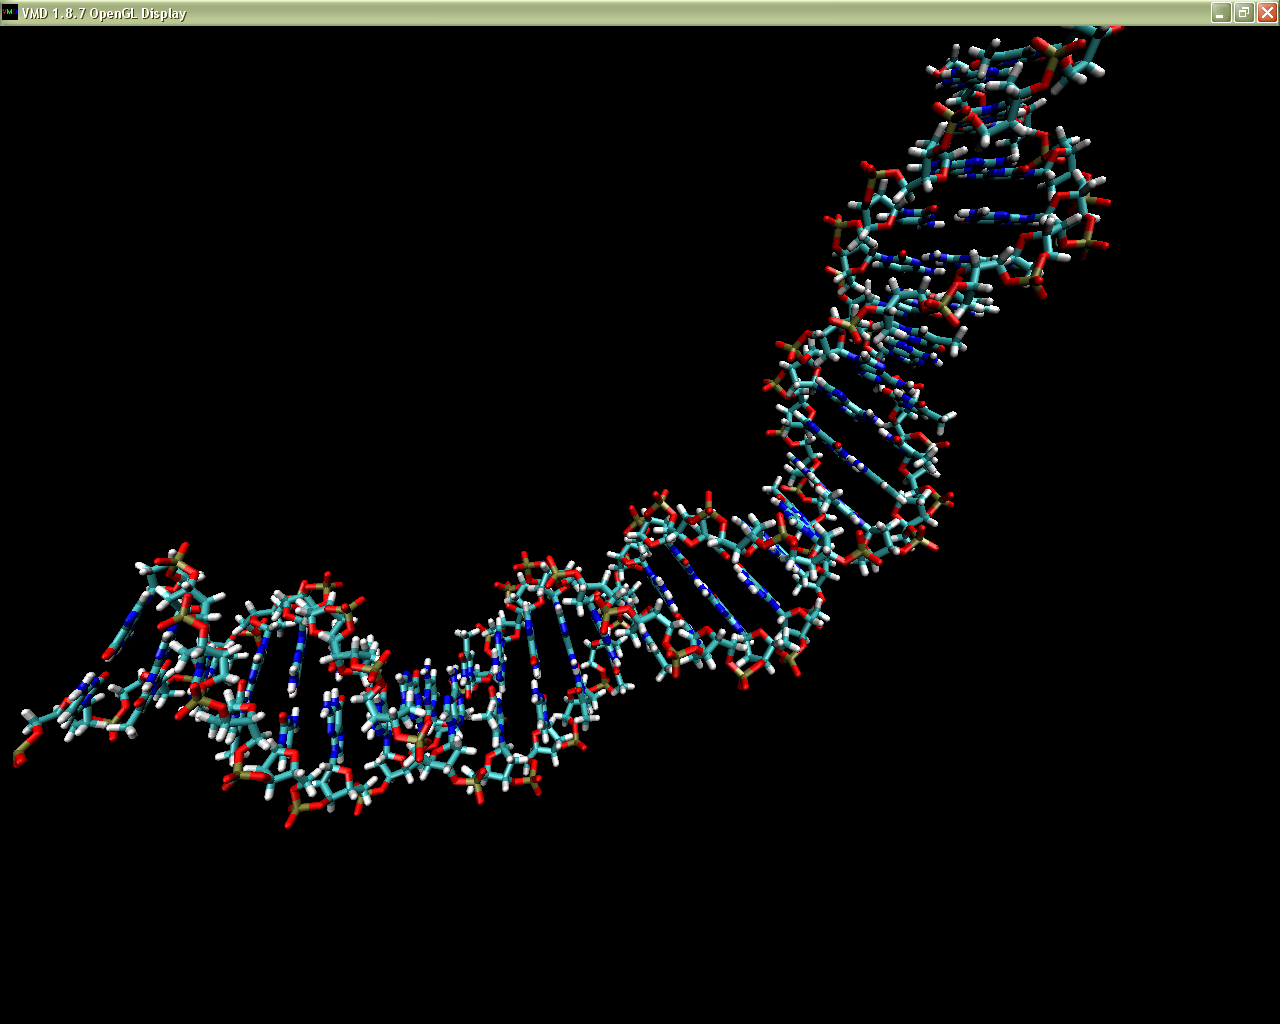 Displaying 17 Images For   Molecular Biology Wallpapers 1280x1024